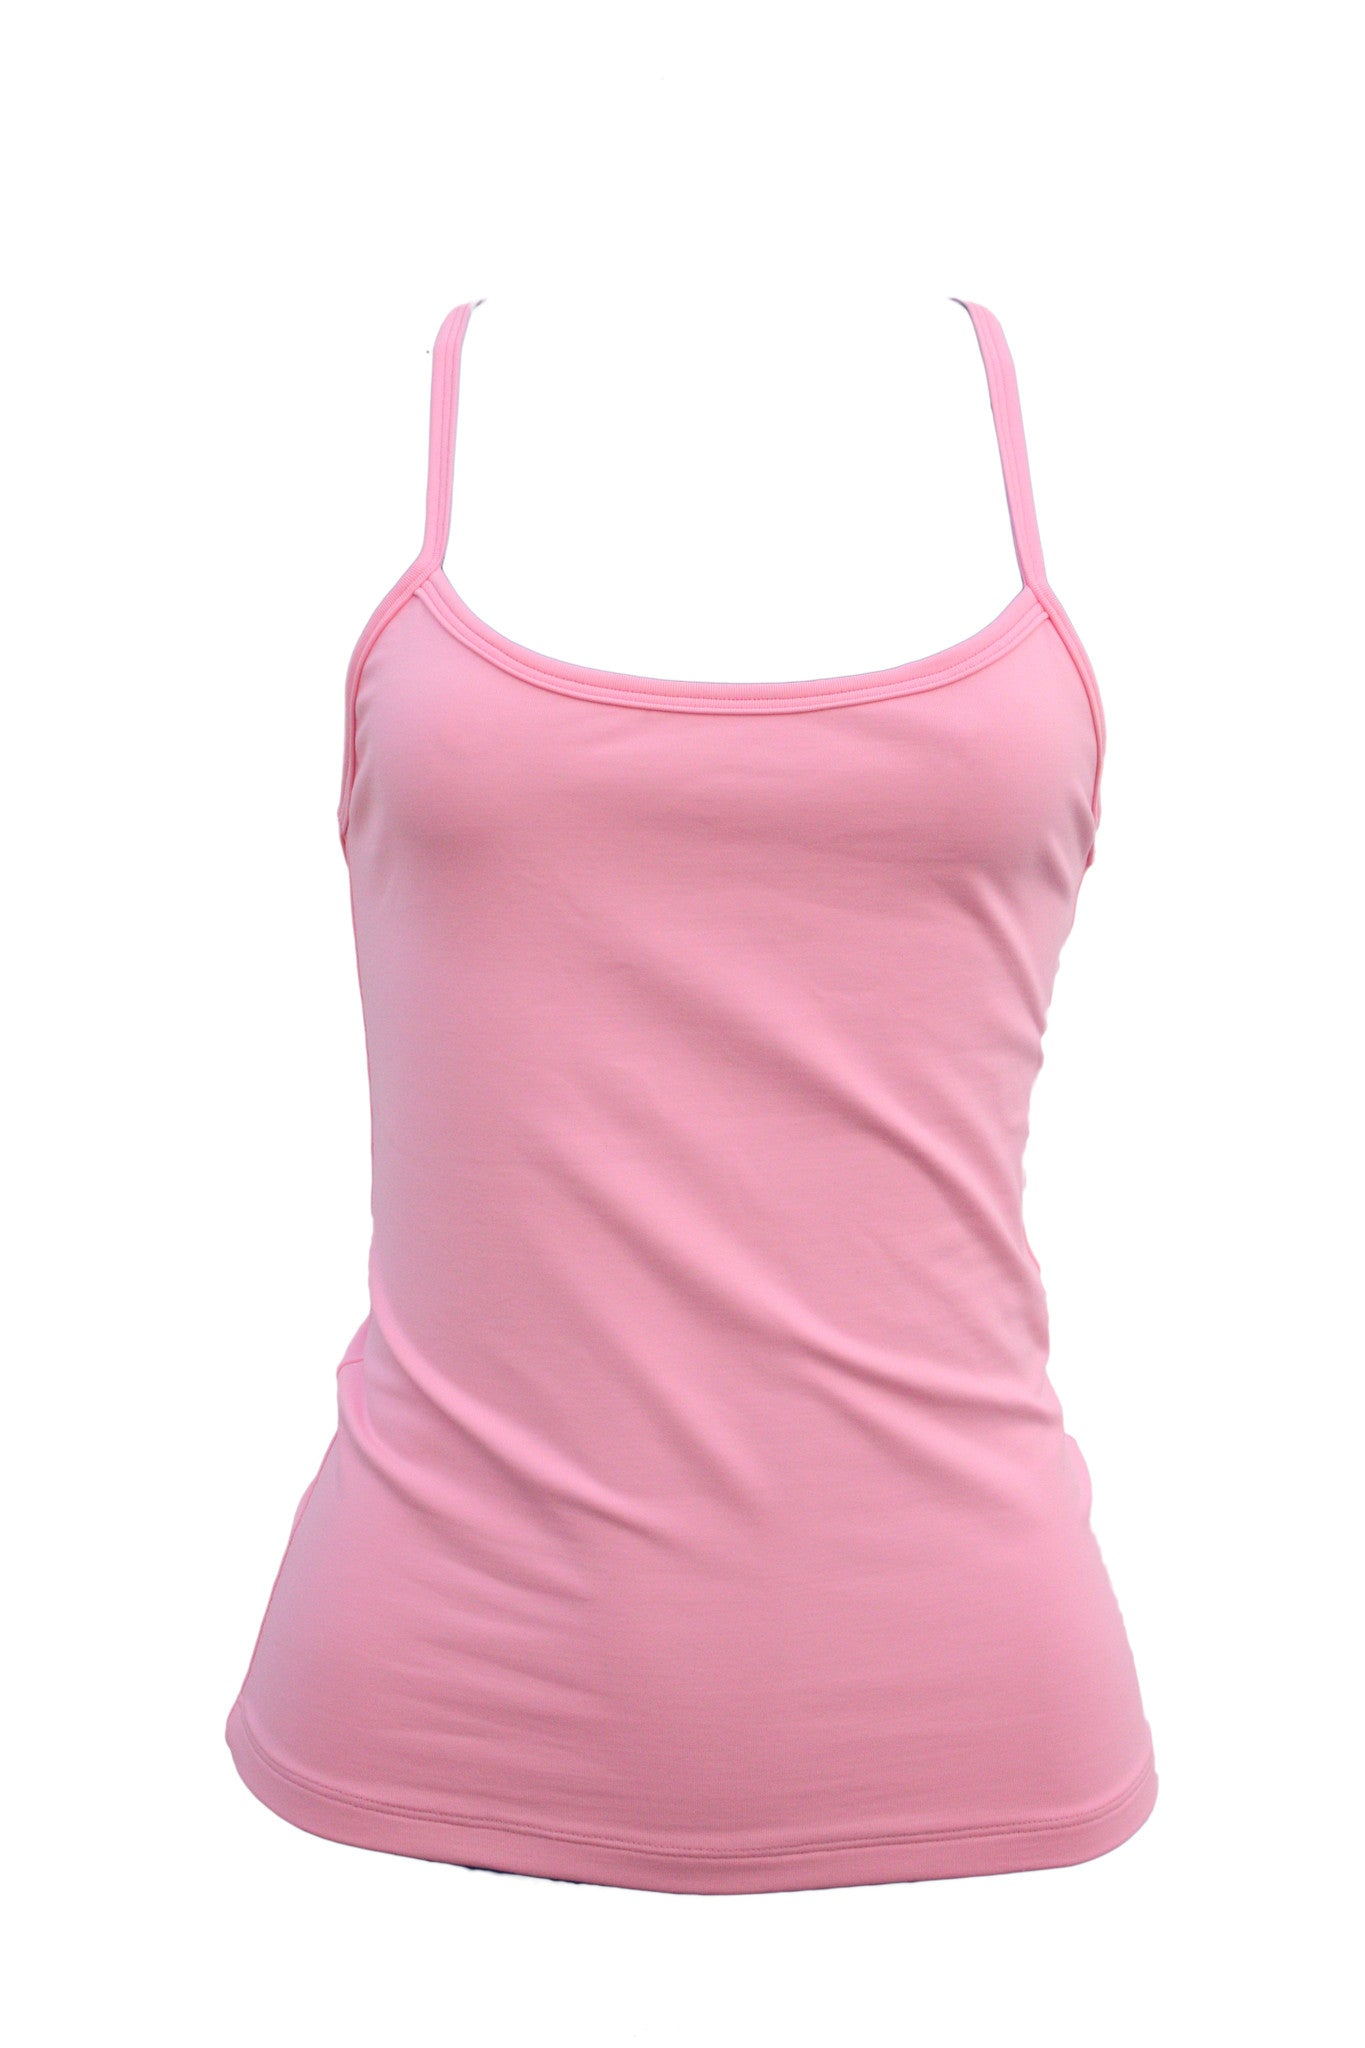 Baby Pink Tank Top – The Blue Body Brazil